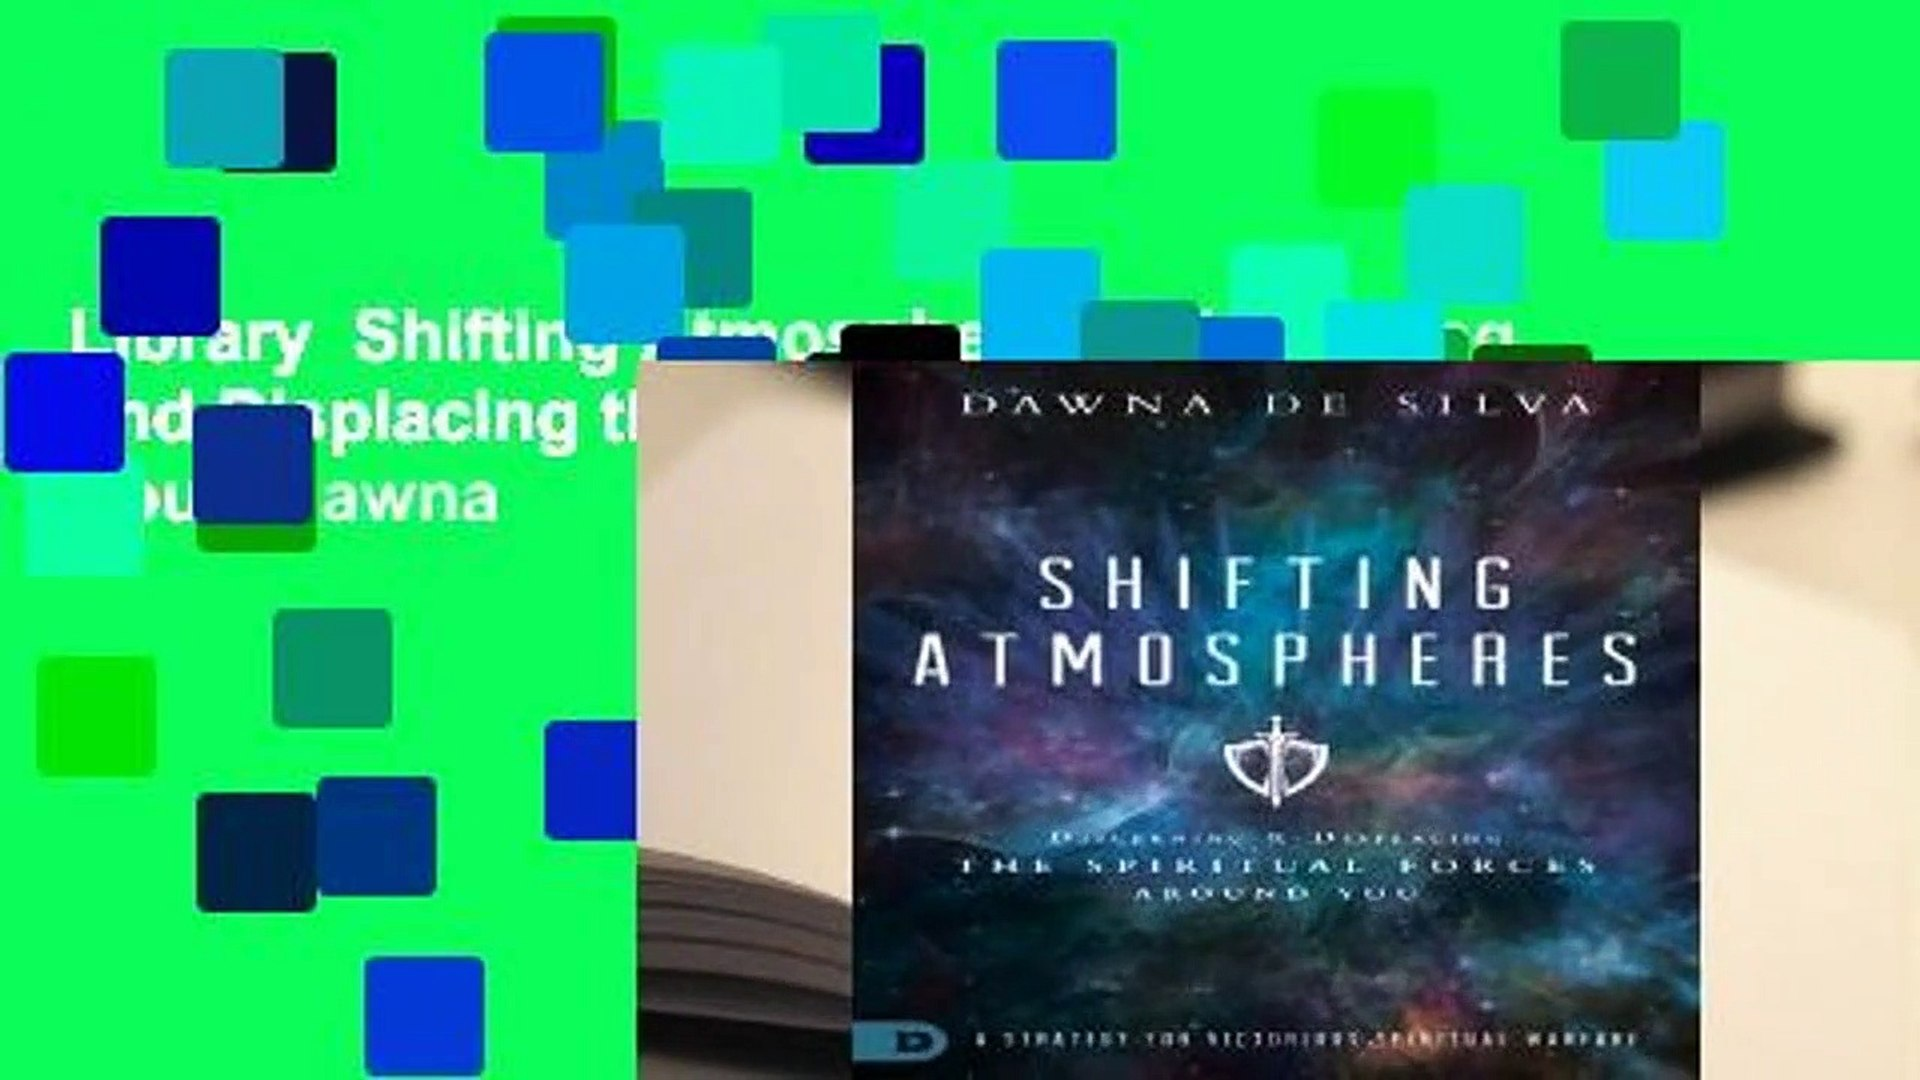 Library  Shifting Atmospheres: Discerning and Displacing the Spiritual Forces Around You - Dawna